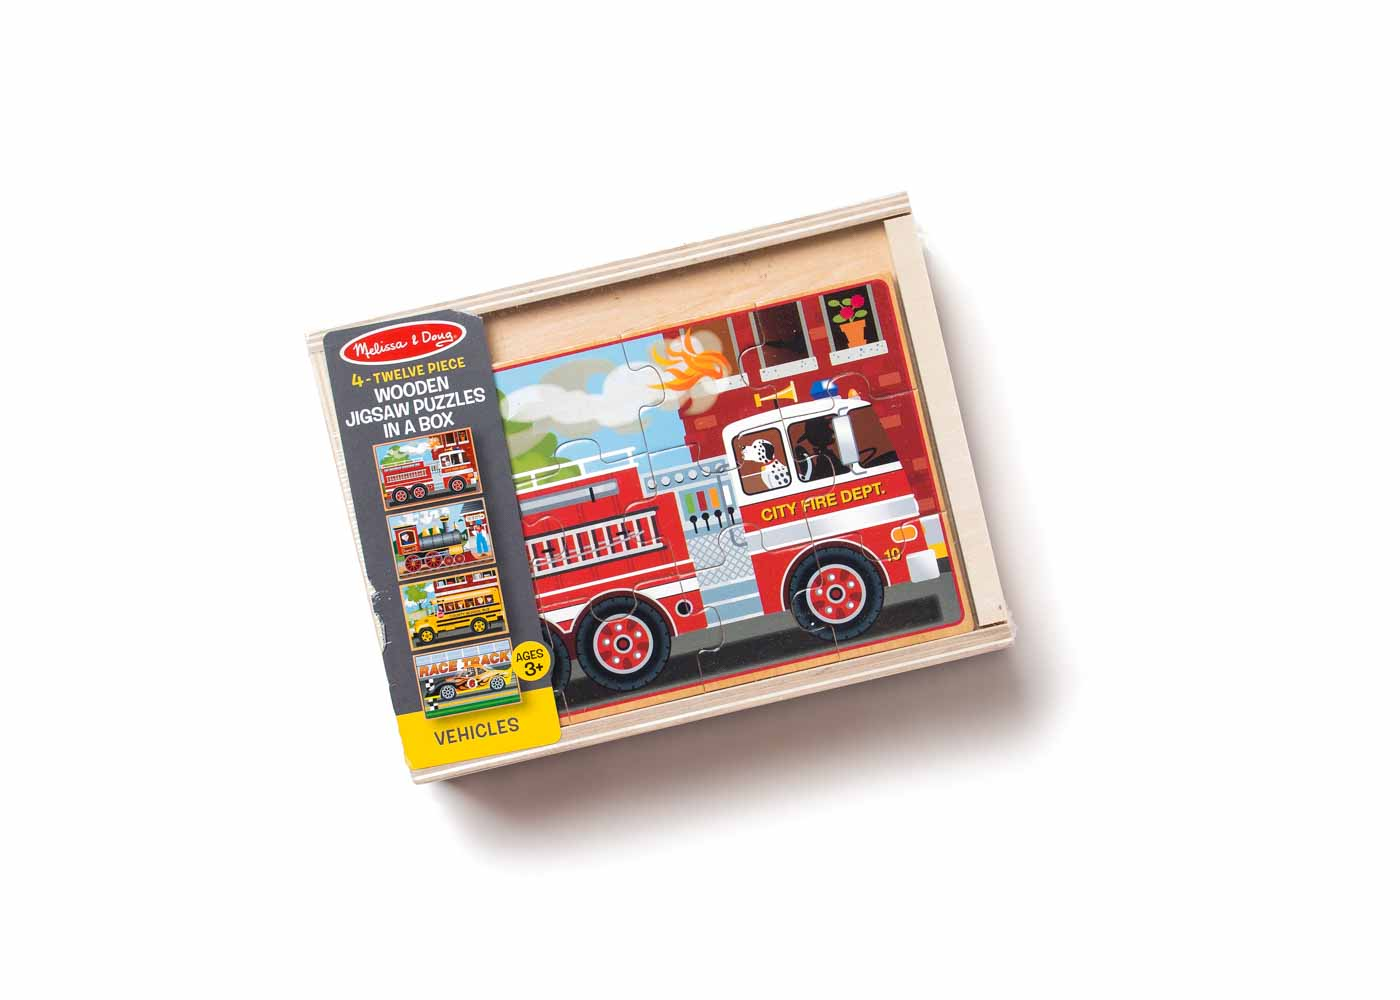 Melissa & Doug's vehicles puzzle set proved immensely popular.